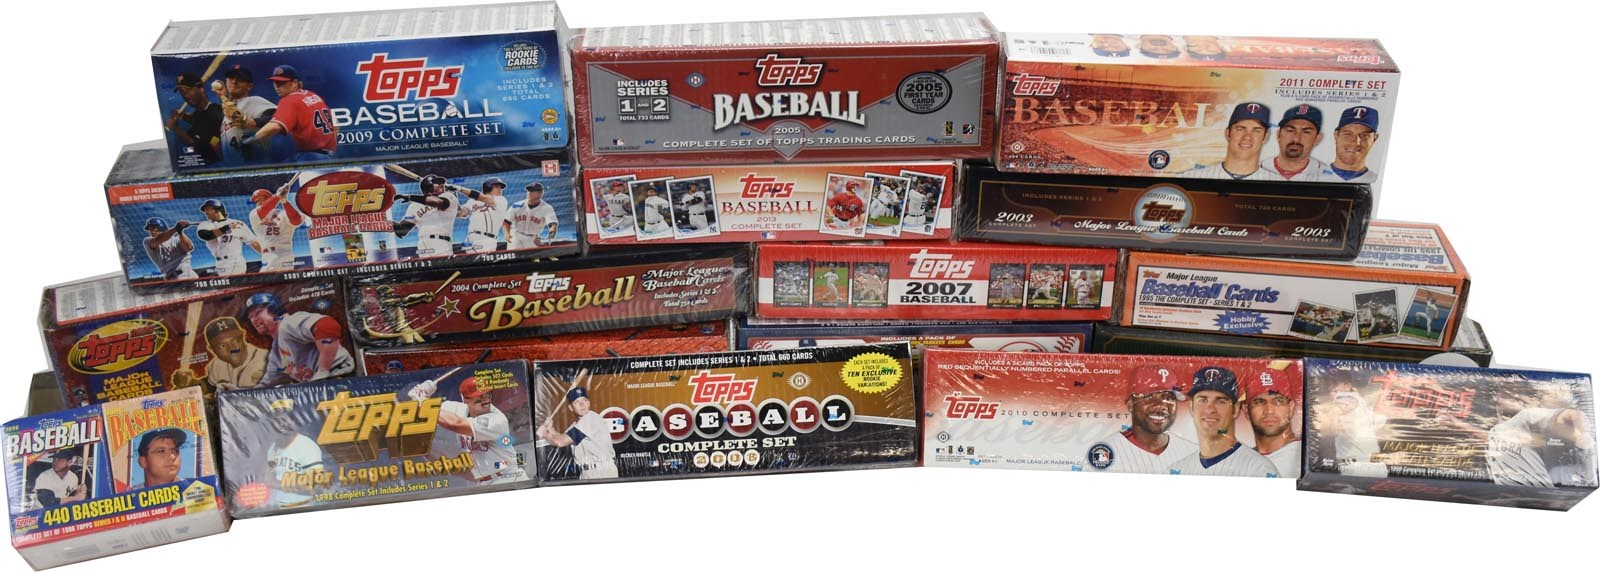 1995-2013 Topps Run of Sealed Complete Sets (19)